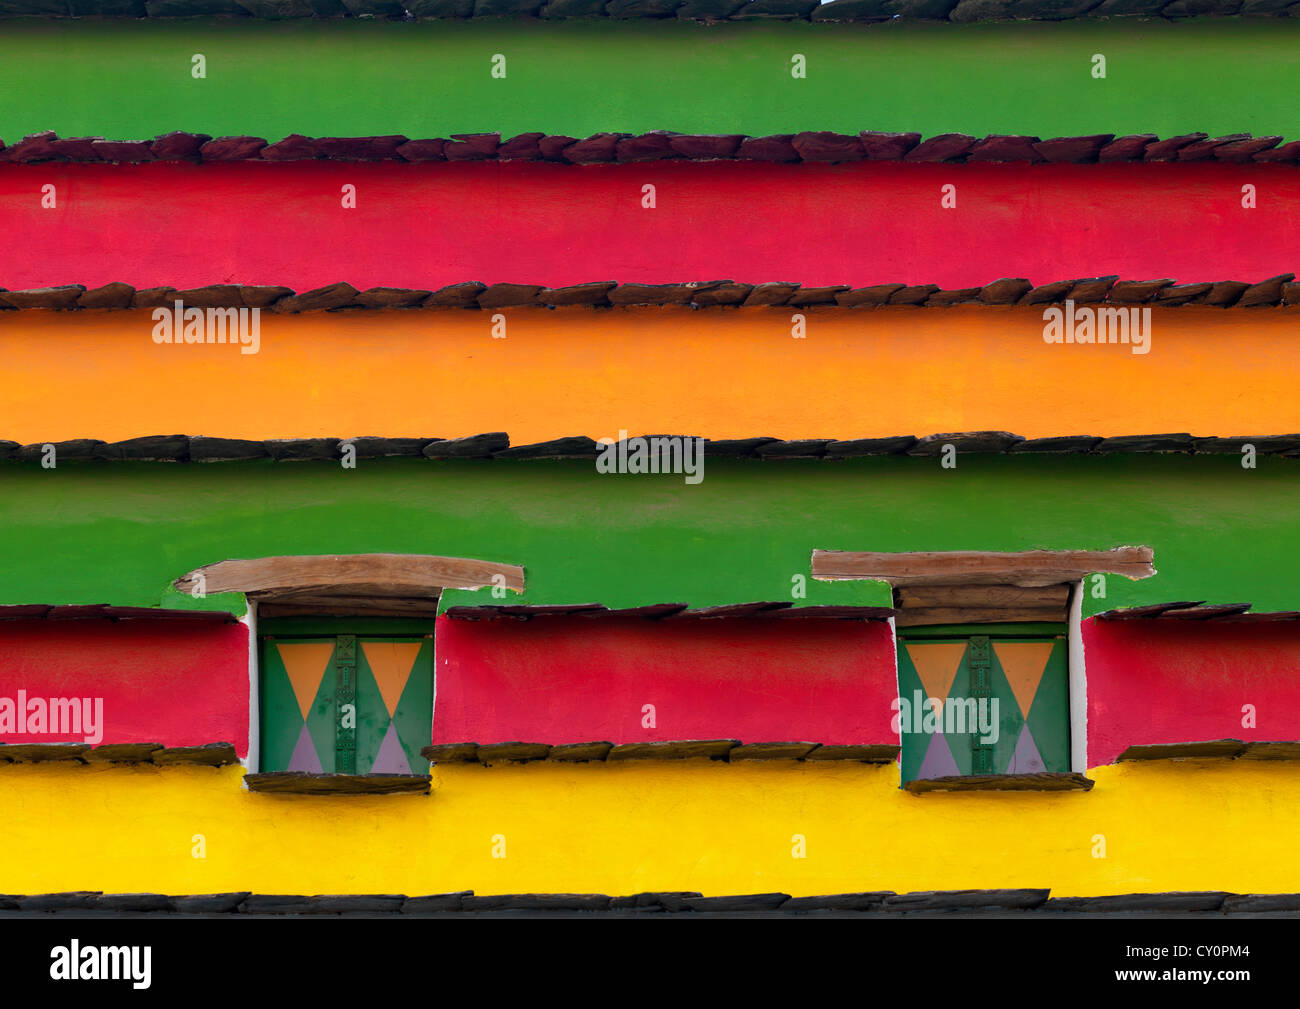 Bin Hamsan House Decoration, Asir Area, Saudi Arabia - Stock Image